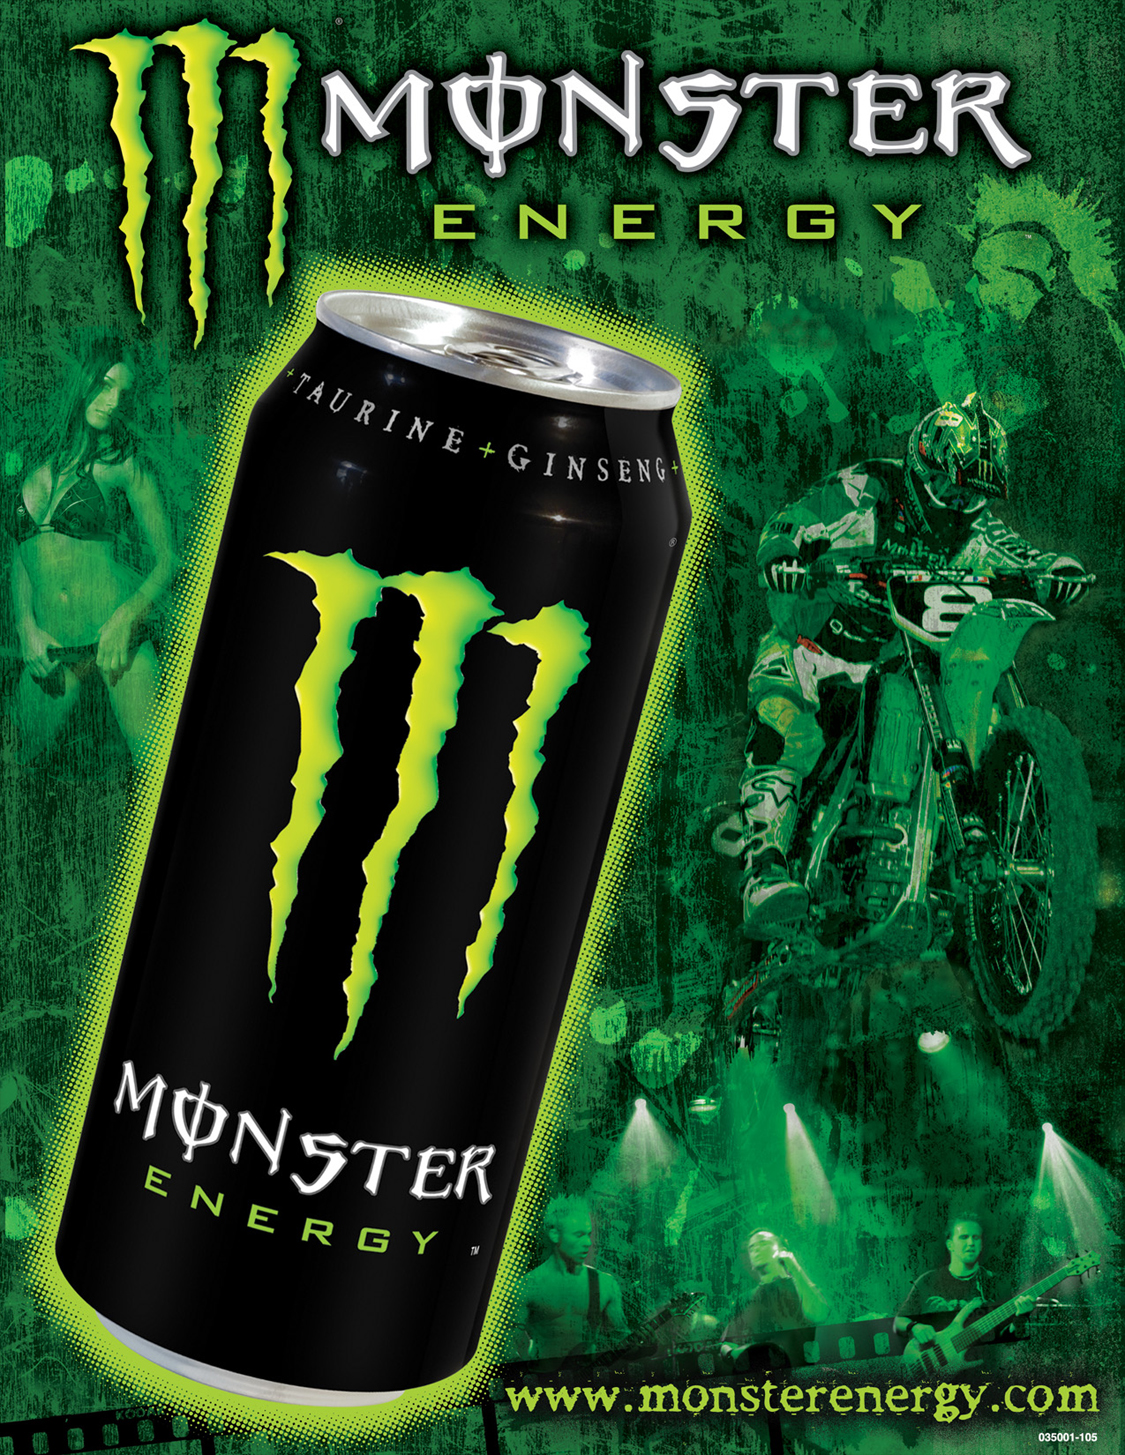 F10MonsterEnergyPoster3.jpg